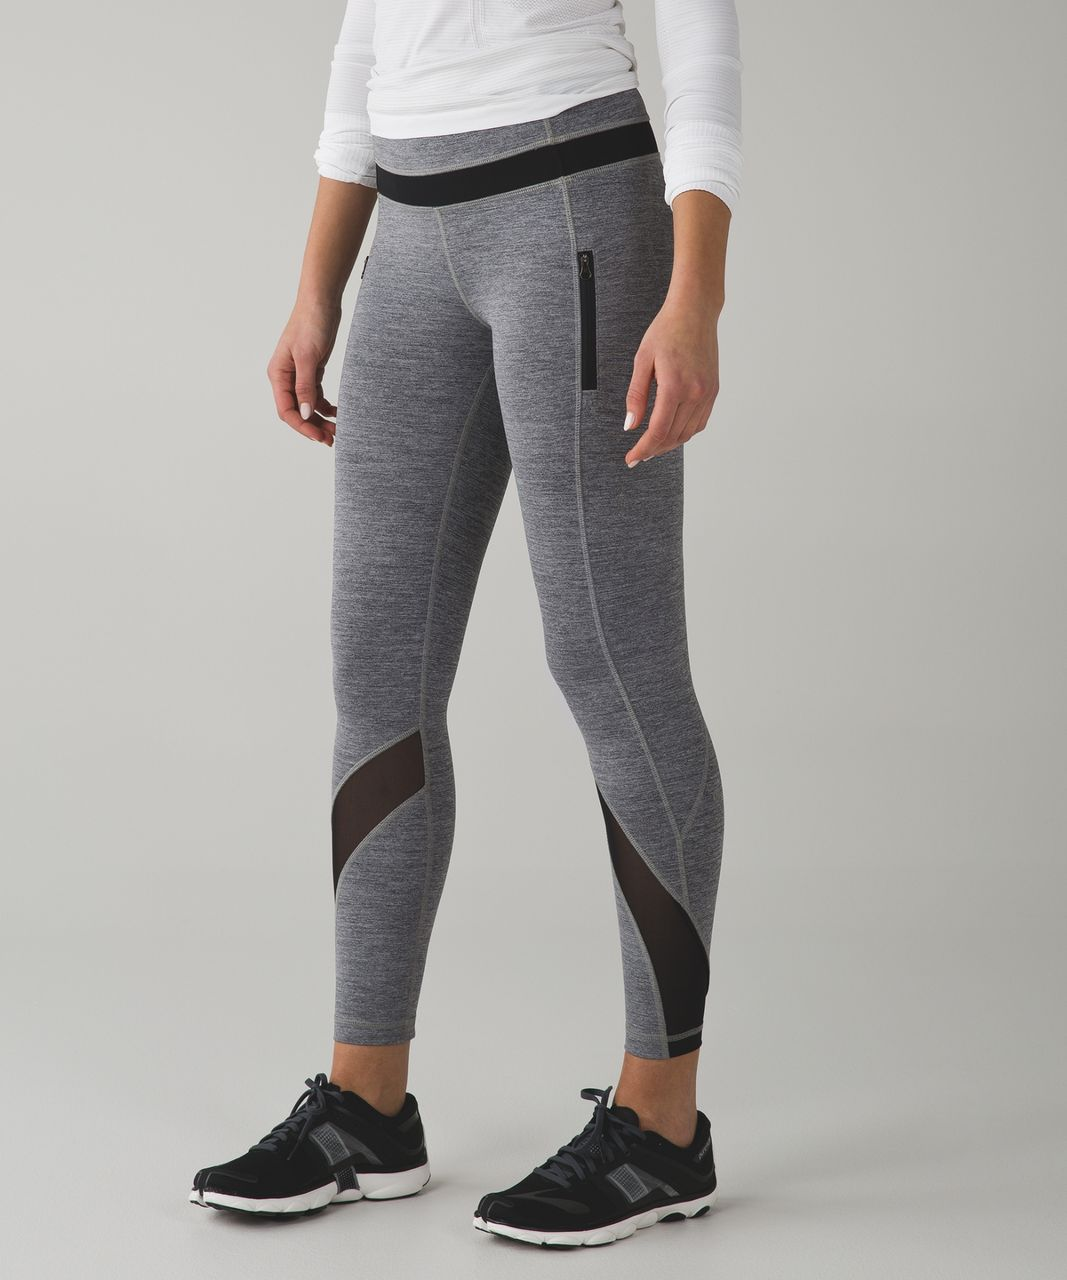 b759b9fddf Lululemon Inspire Tight II (Mesh) - Space Dye Camo Black Dark Slate - lulu  fanatics